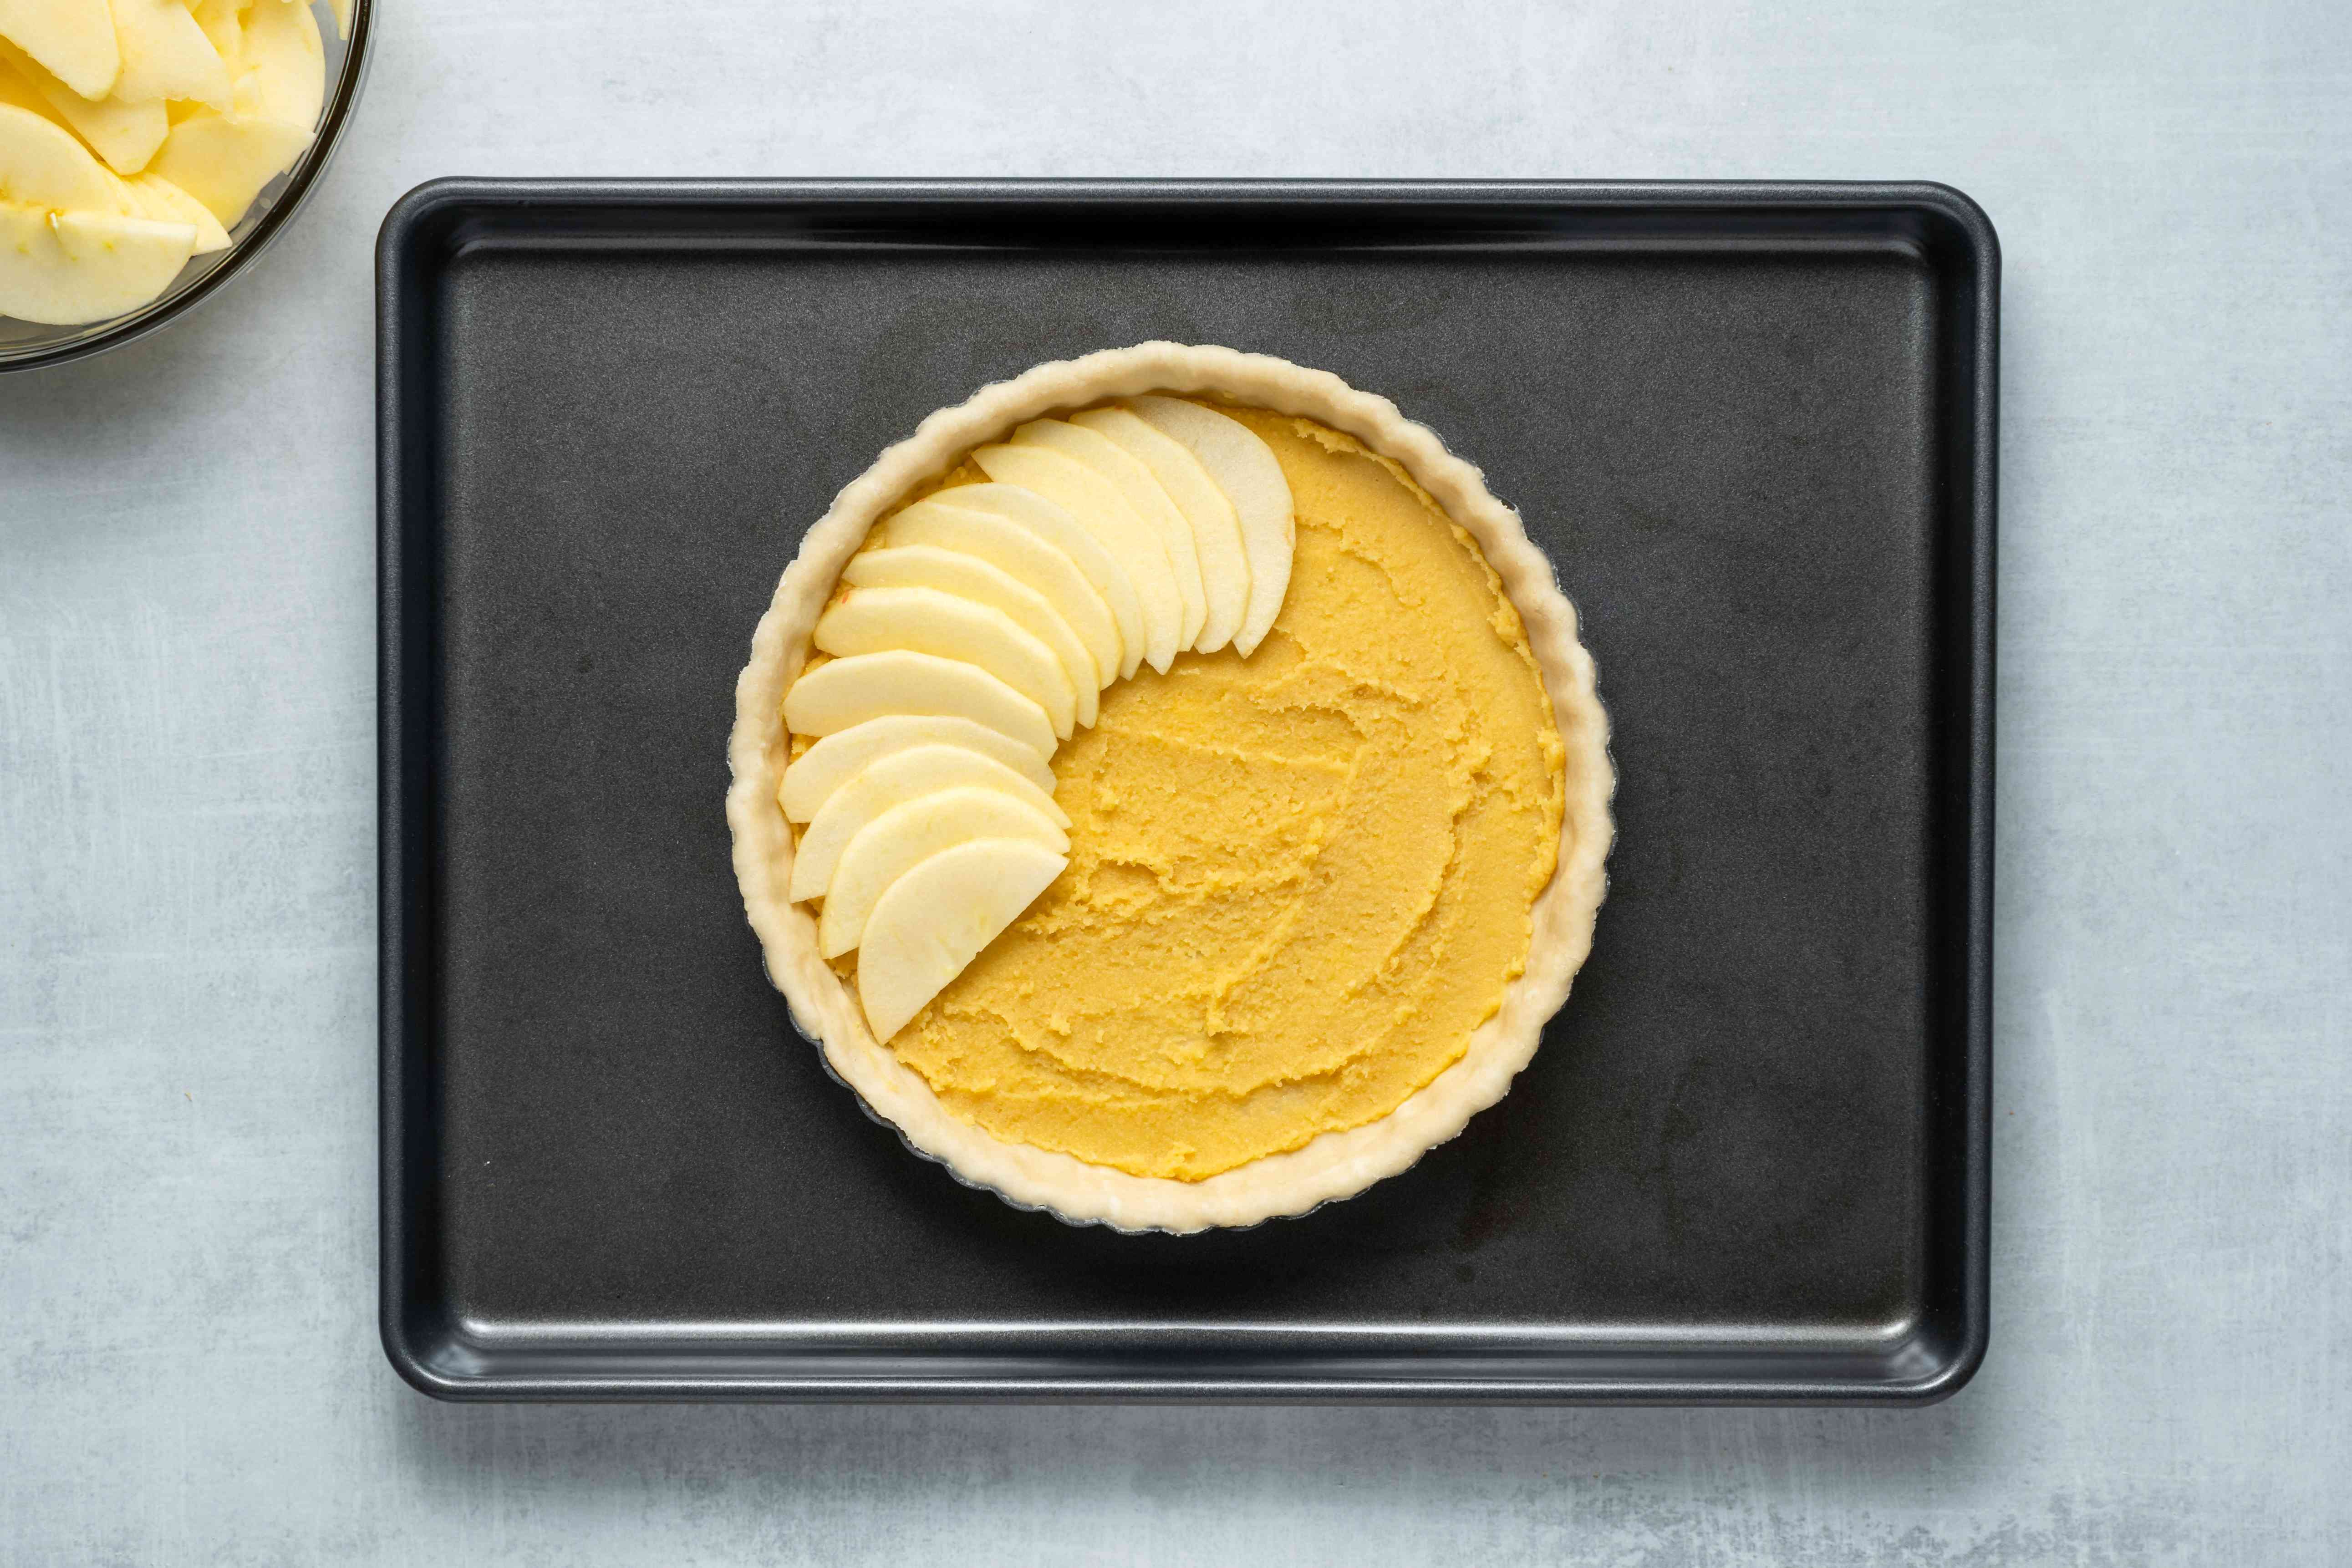 Spread the frangipane evenly over the bottom of the chilled pastry shell, arrange the apple slices in a fan